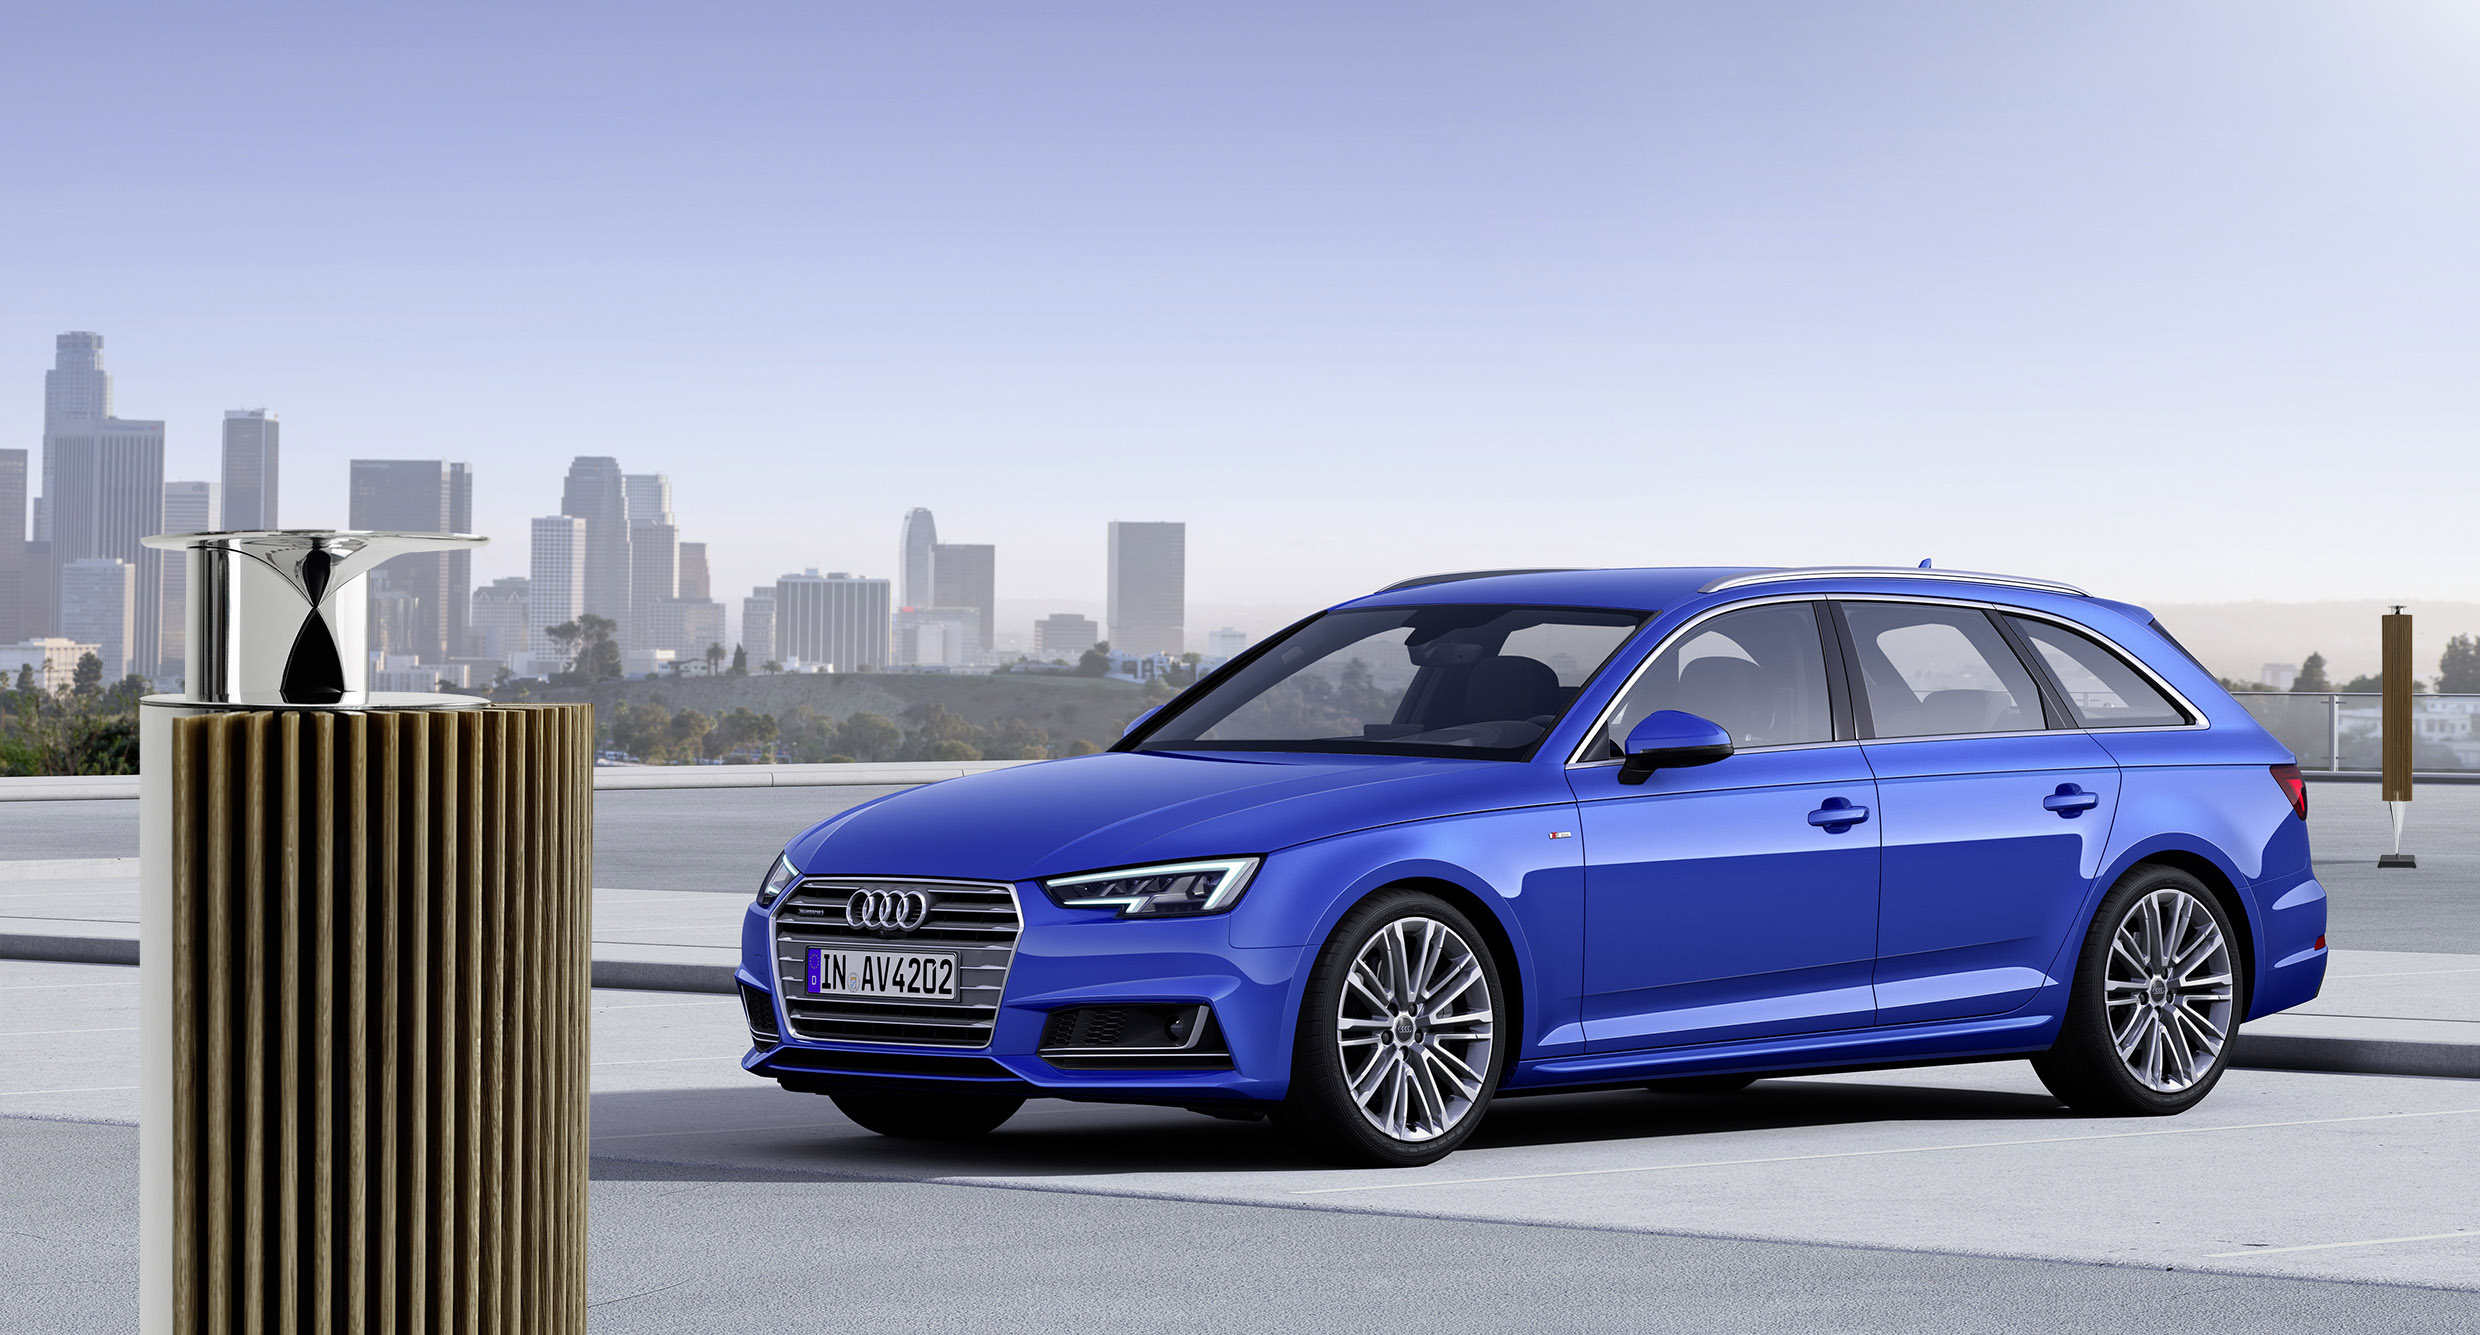 2016 audi a4 saloon and avant will wear the bang olufsen 3d sound system 97515_1 2016 audi a4 saloon and avant will wear a bang & olufsen 3d sound  at reclaimingppi.co